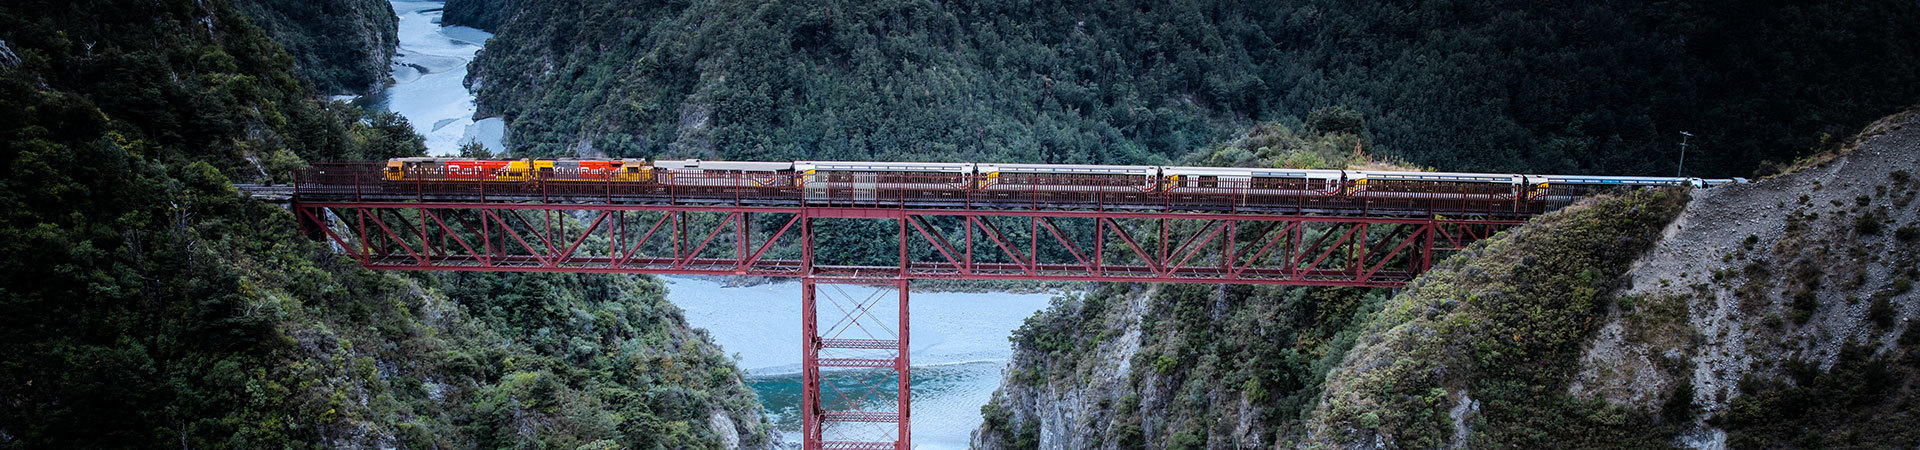 TranzAlpine train, South Island